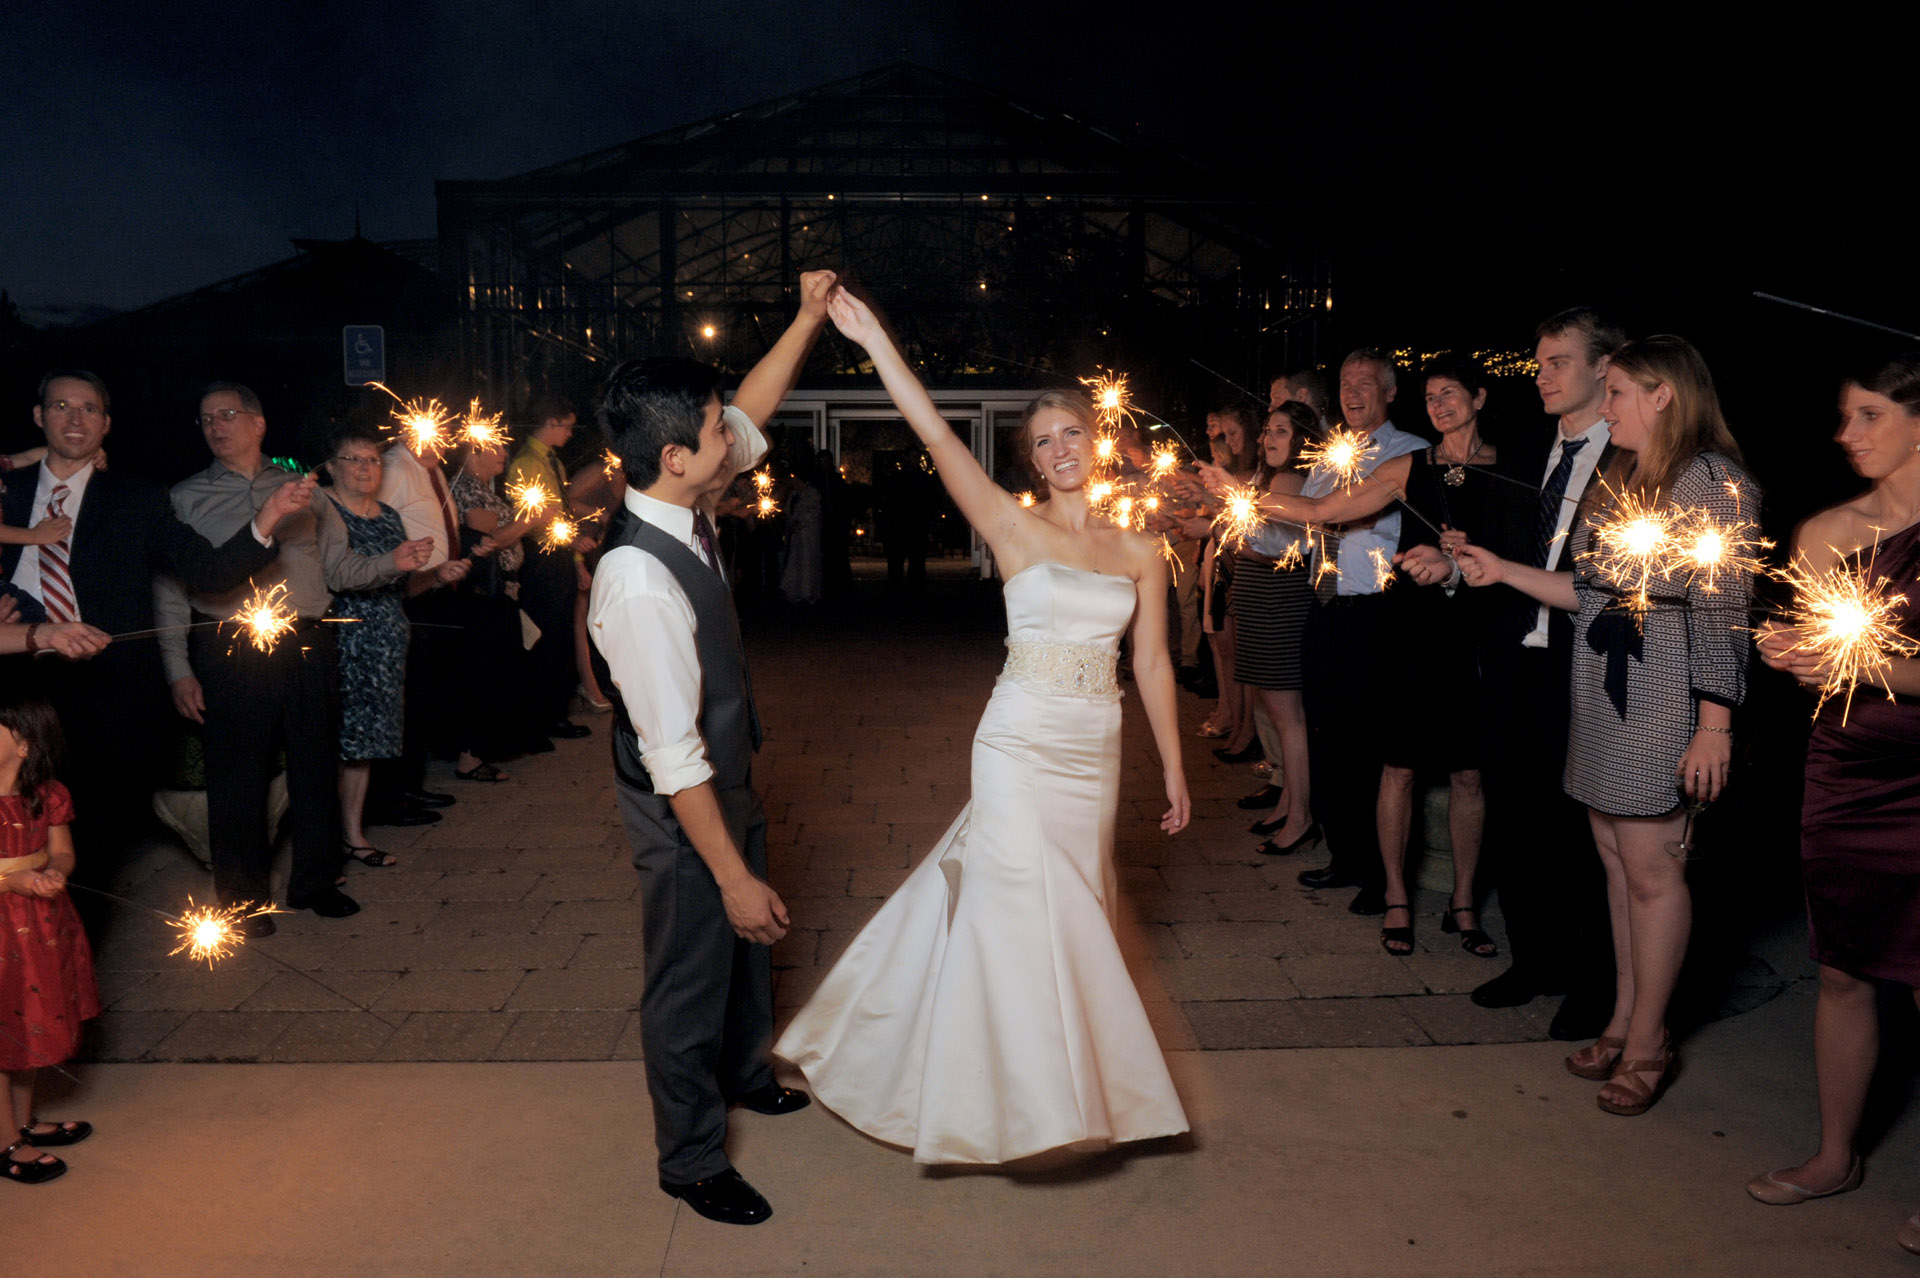 Planterra Conservatory wedding photographer's photo of bride and groom dancing outside during a sparkler exit at the Planterra Conservatory in West Bloomfield, Michigan.